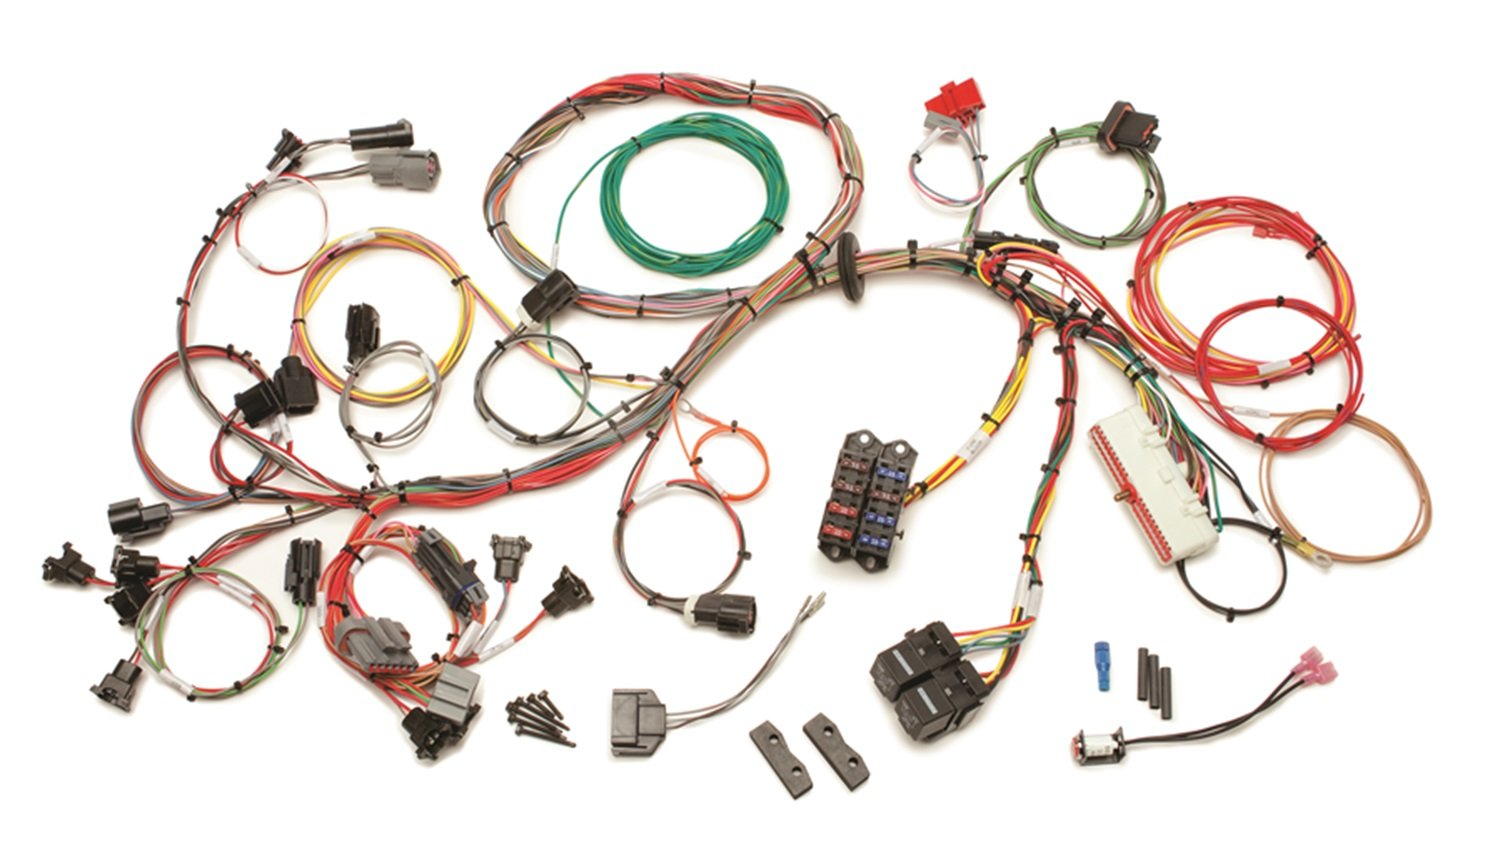 71UX1IBfleL._SL1500_ amazon com painless 60510 5 0l wiring harness automotive painless wire harness at bayanpartner.co